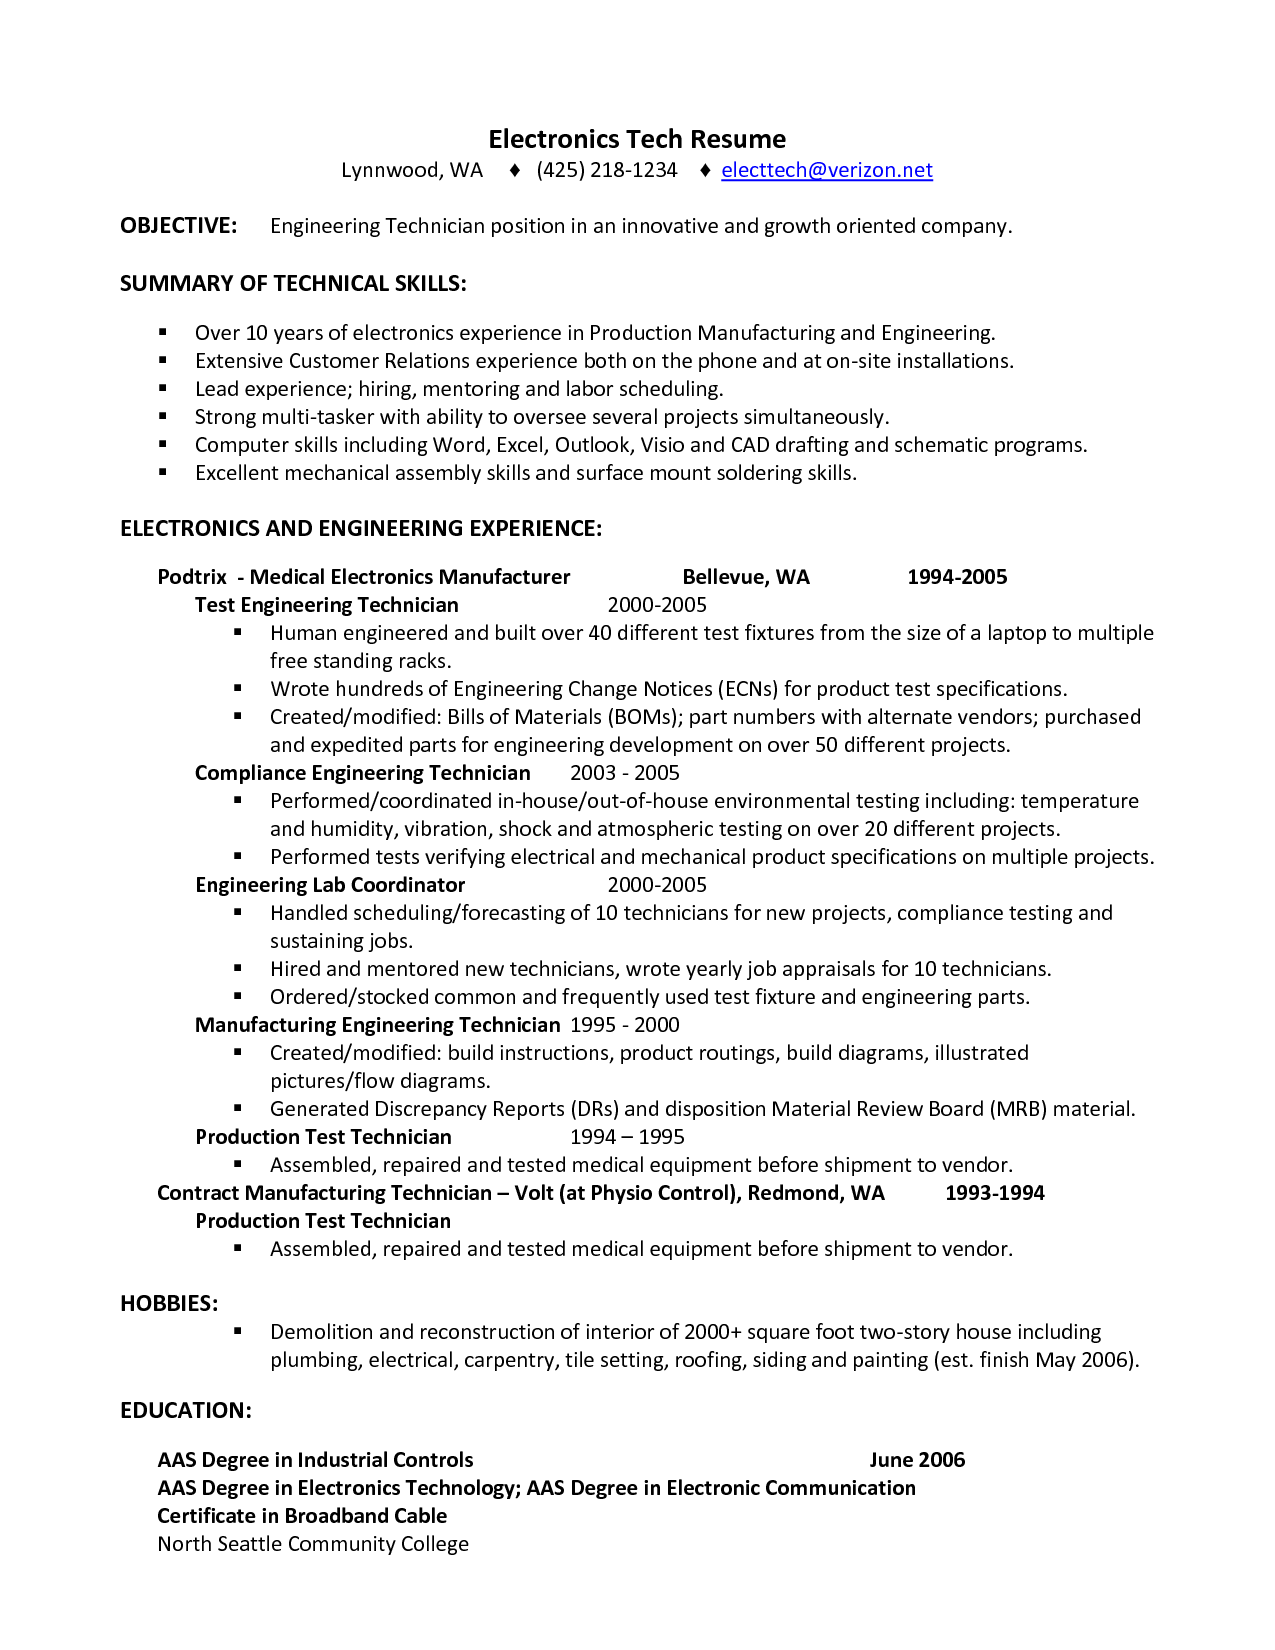 Electronic Assembly Resume Sample Resume to a Computer